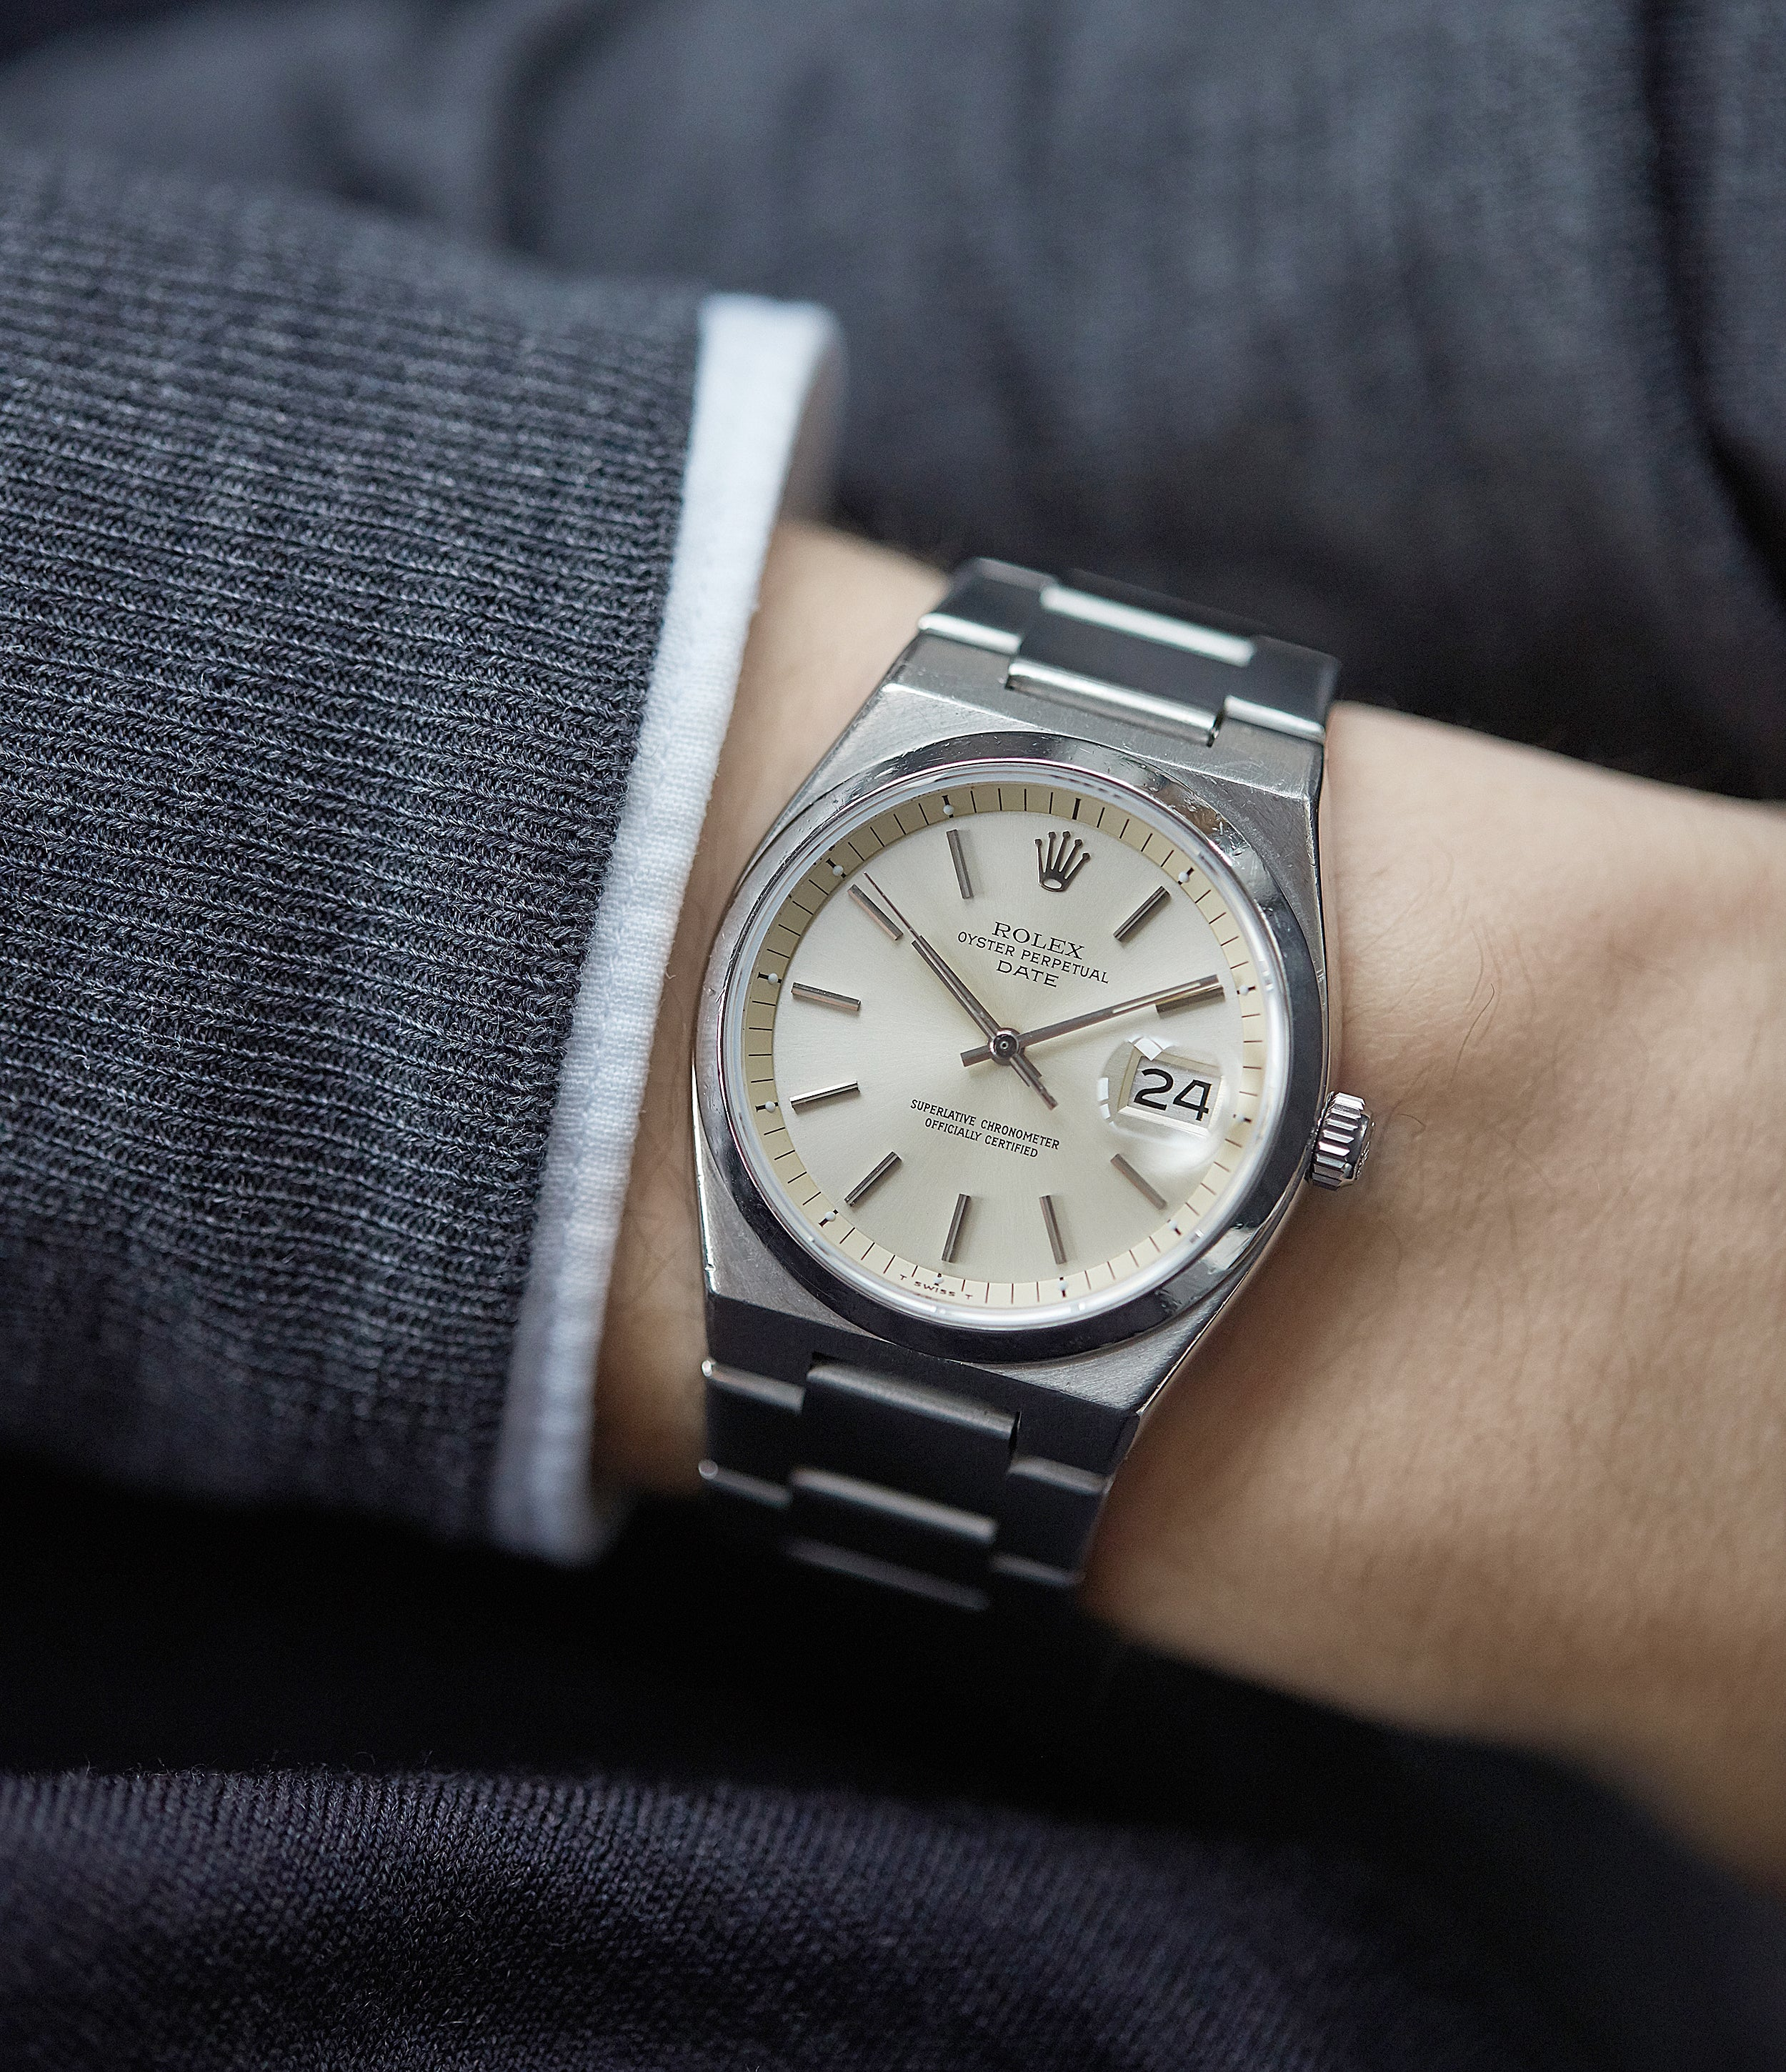 Rolex Oyster Perpetual 1530 steel sport watch with papers for sale online at A Collected Man London UK specialist of rare watches